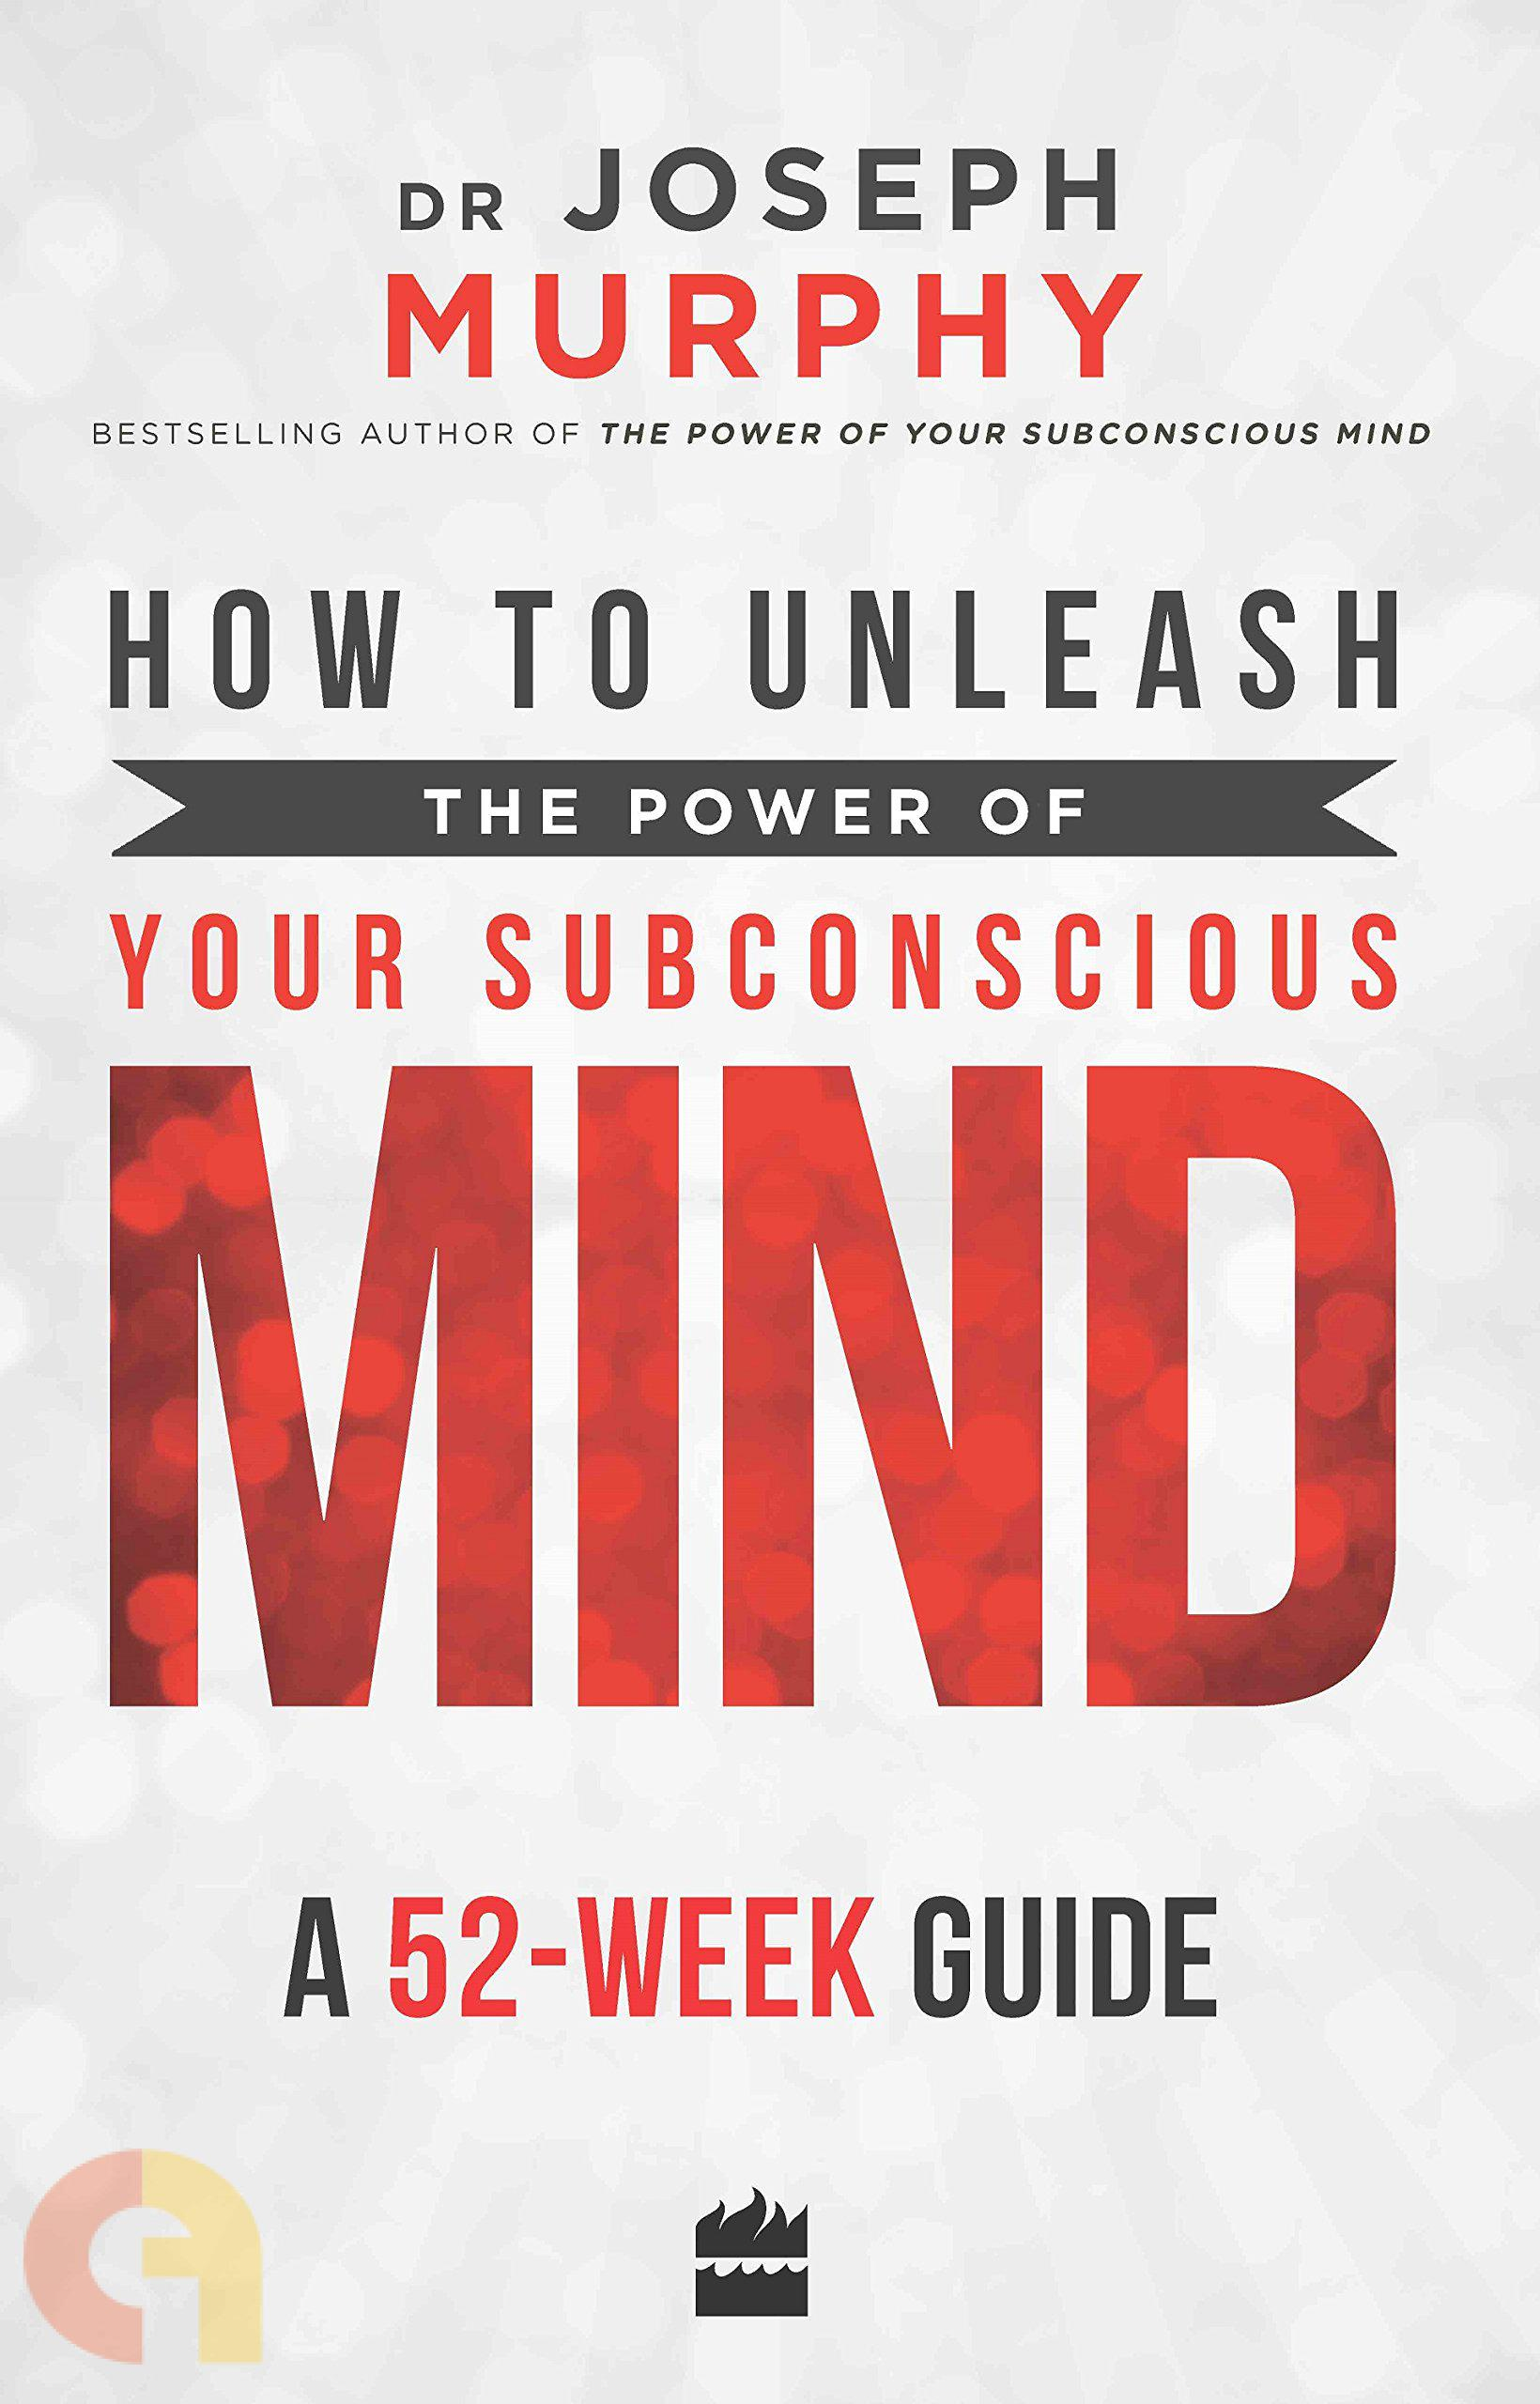 How to Unleash the Power of Your Subconscious Mind